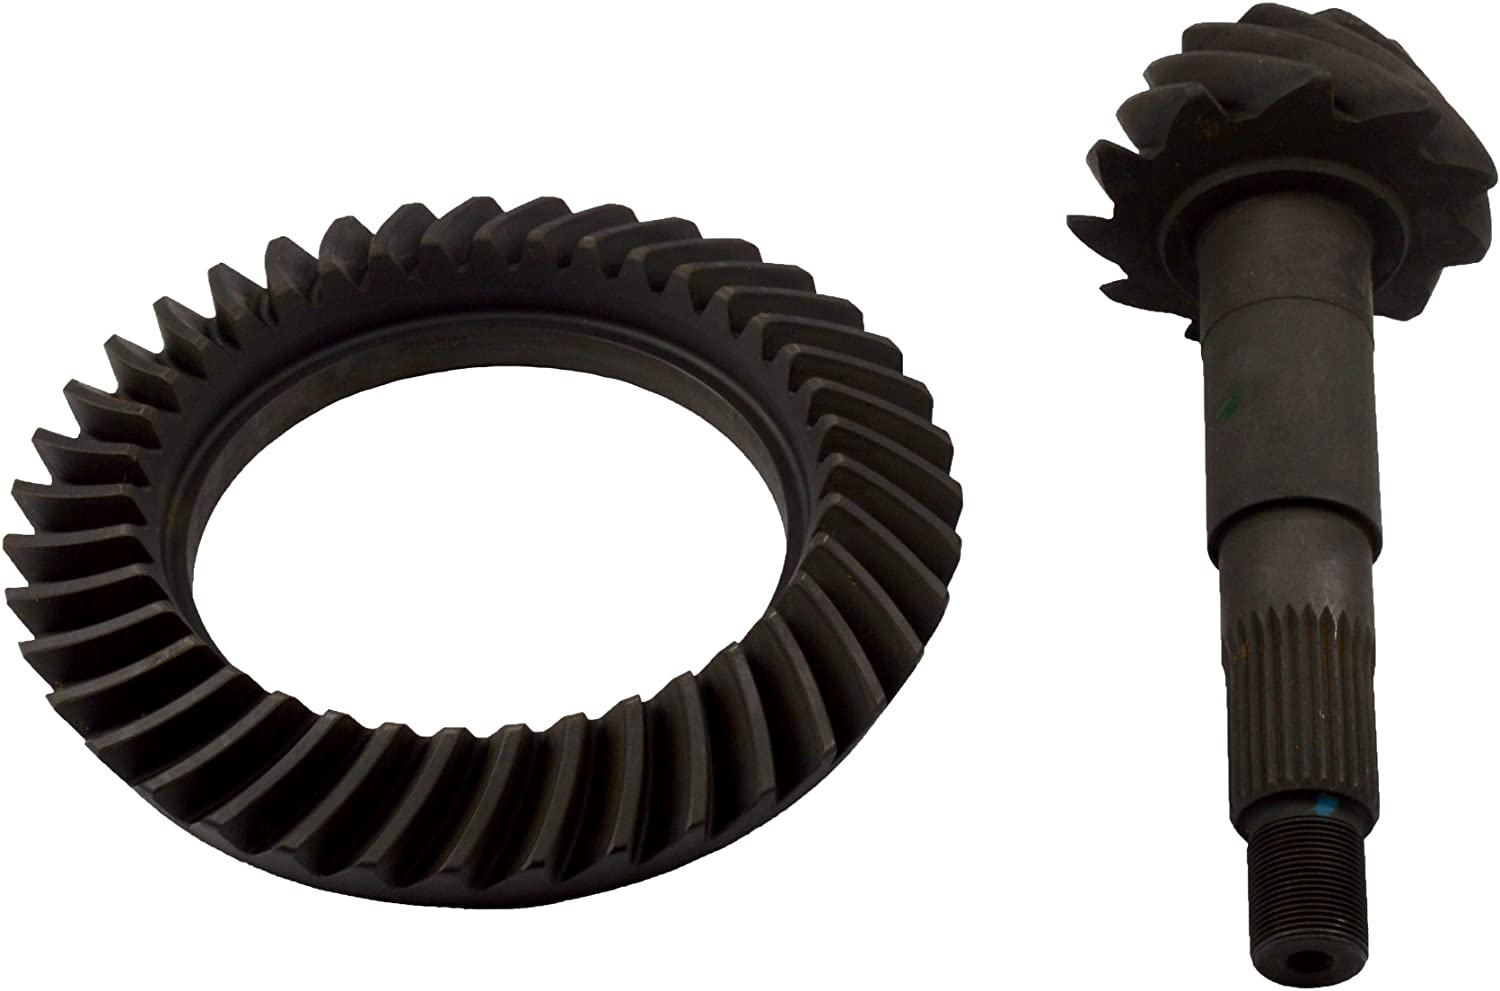 SVL 708126-3 Differential Ring and Pinion Gear Set for DANA 70 4.1 Ratio